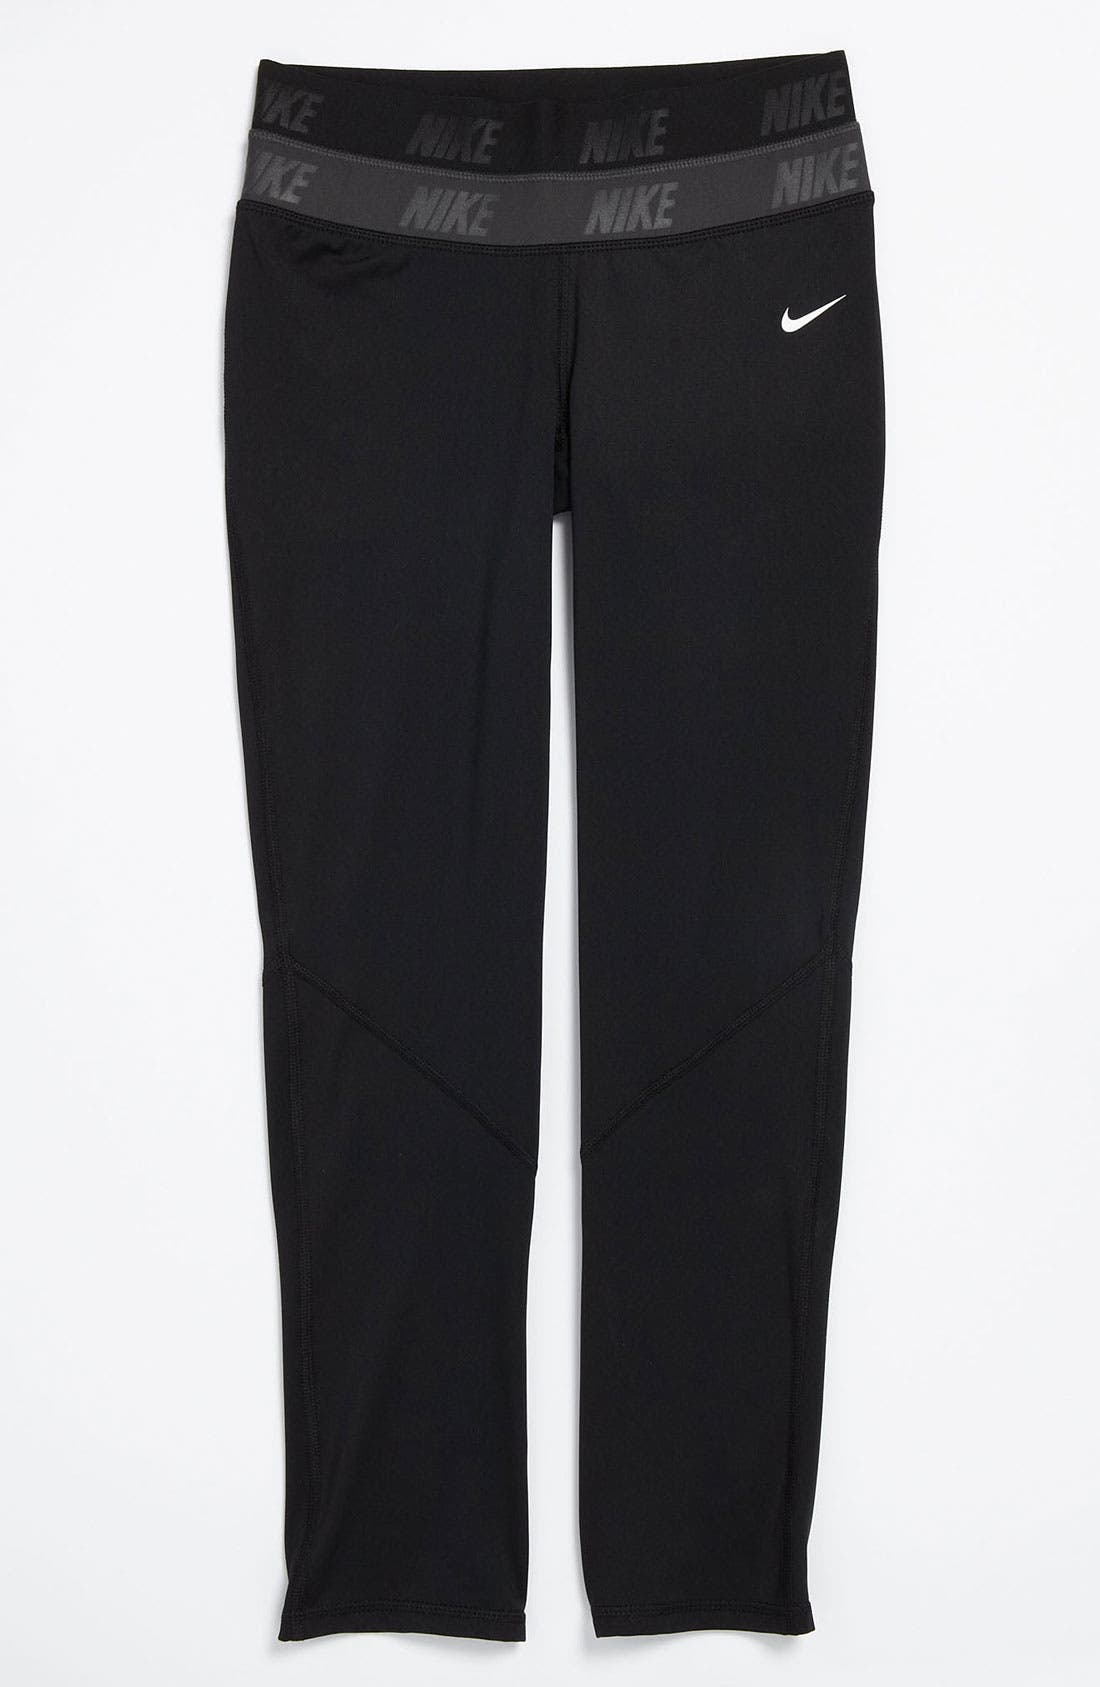 Main Image - Nike Pro 'Hyperwarm' Compression Tights (Big Girls)